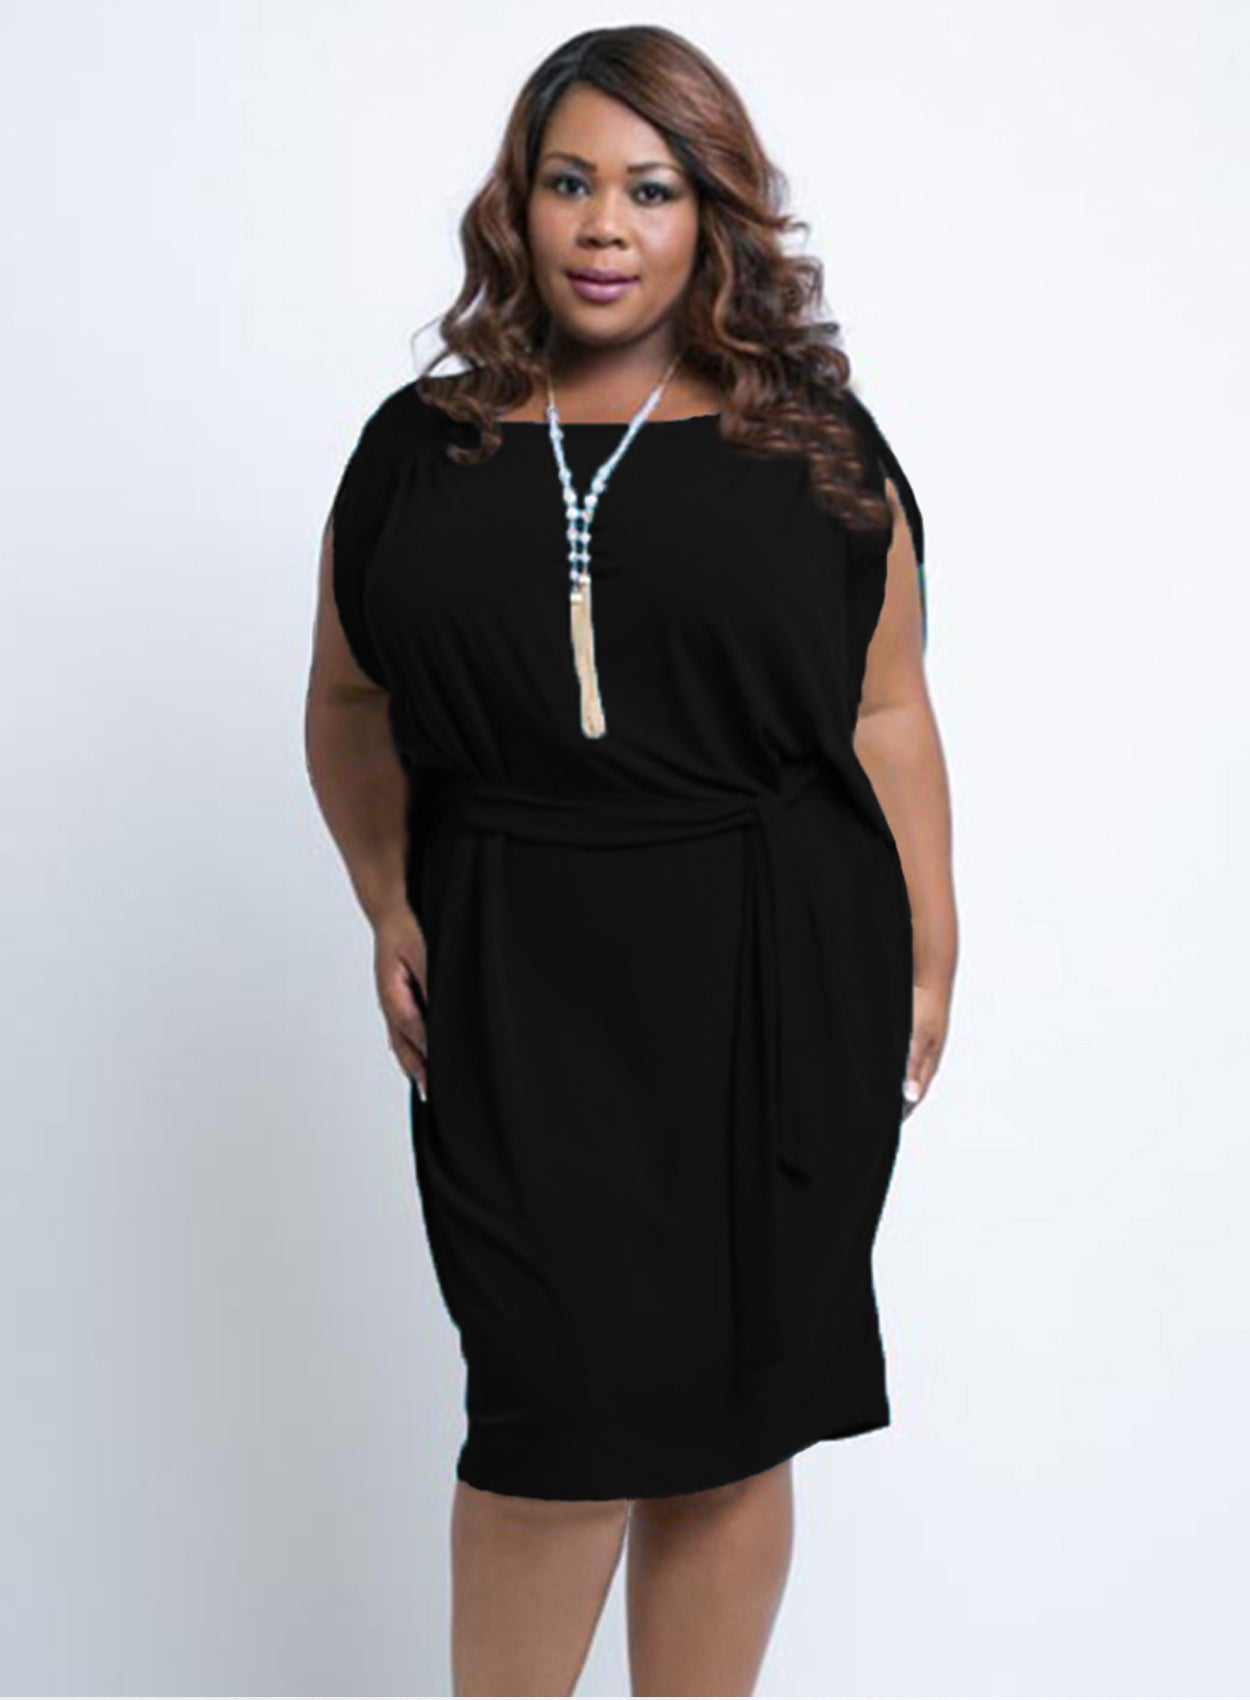 RELAXED FIT CURVY BLACK SLEEVELESS PLUS SIZE DRESS WITH TIE BELT